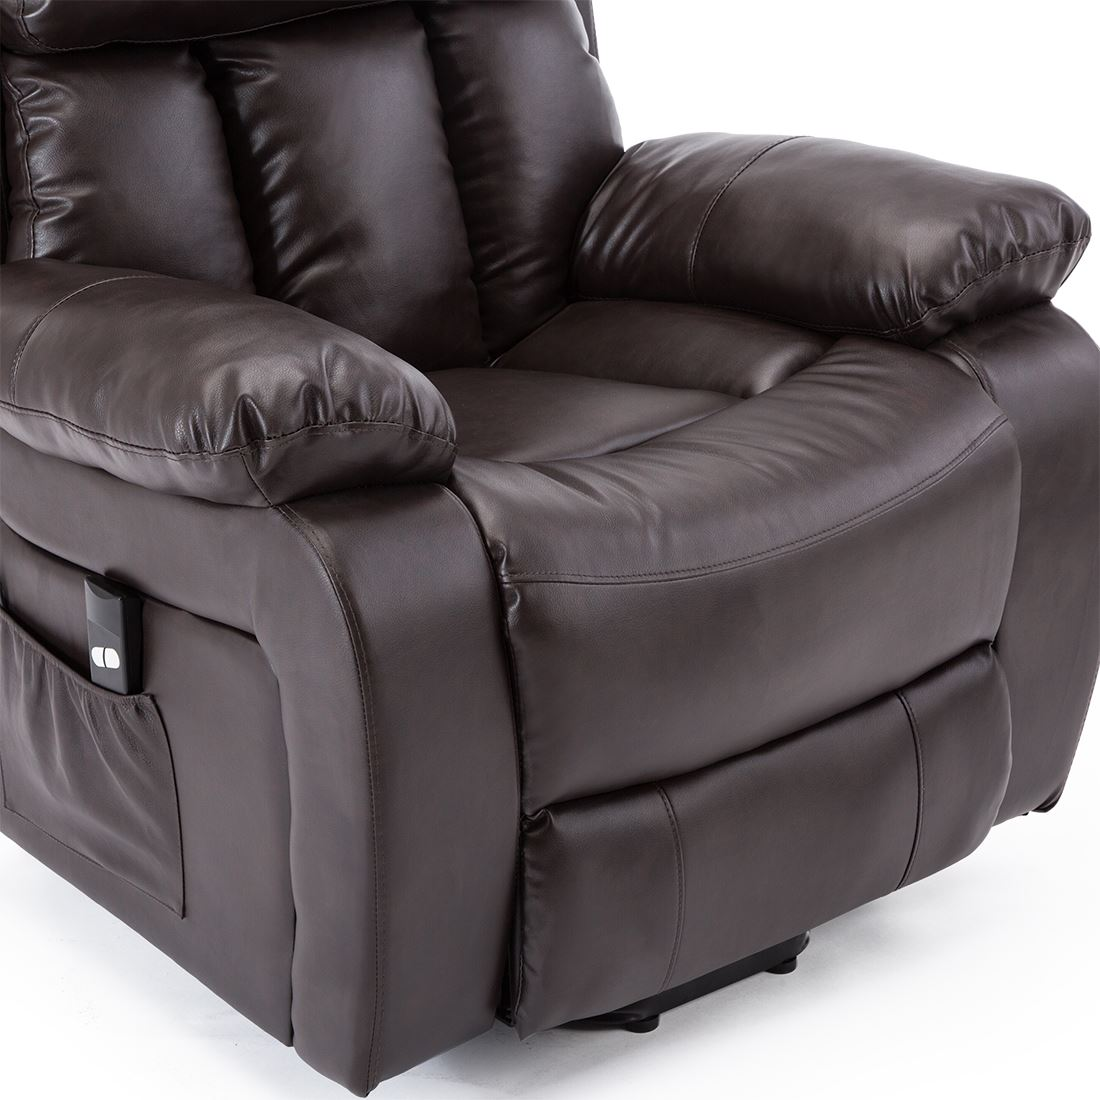 CHESTER-ELECTRIC-RISE-LEATHER-RECLINER-POWER-ARMCHAIR-HEATED-MASSAGE-SOFA-CHAIR thumbnail 17